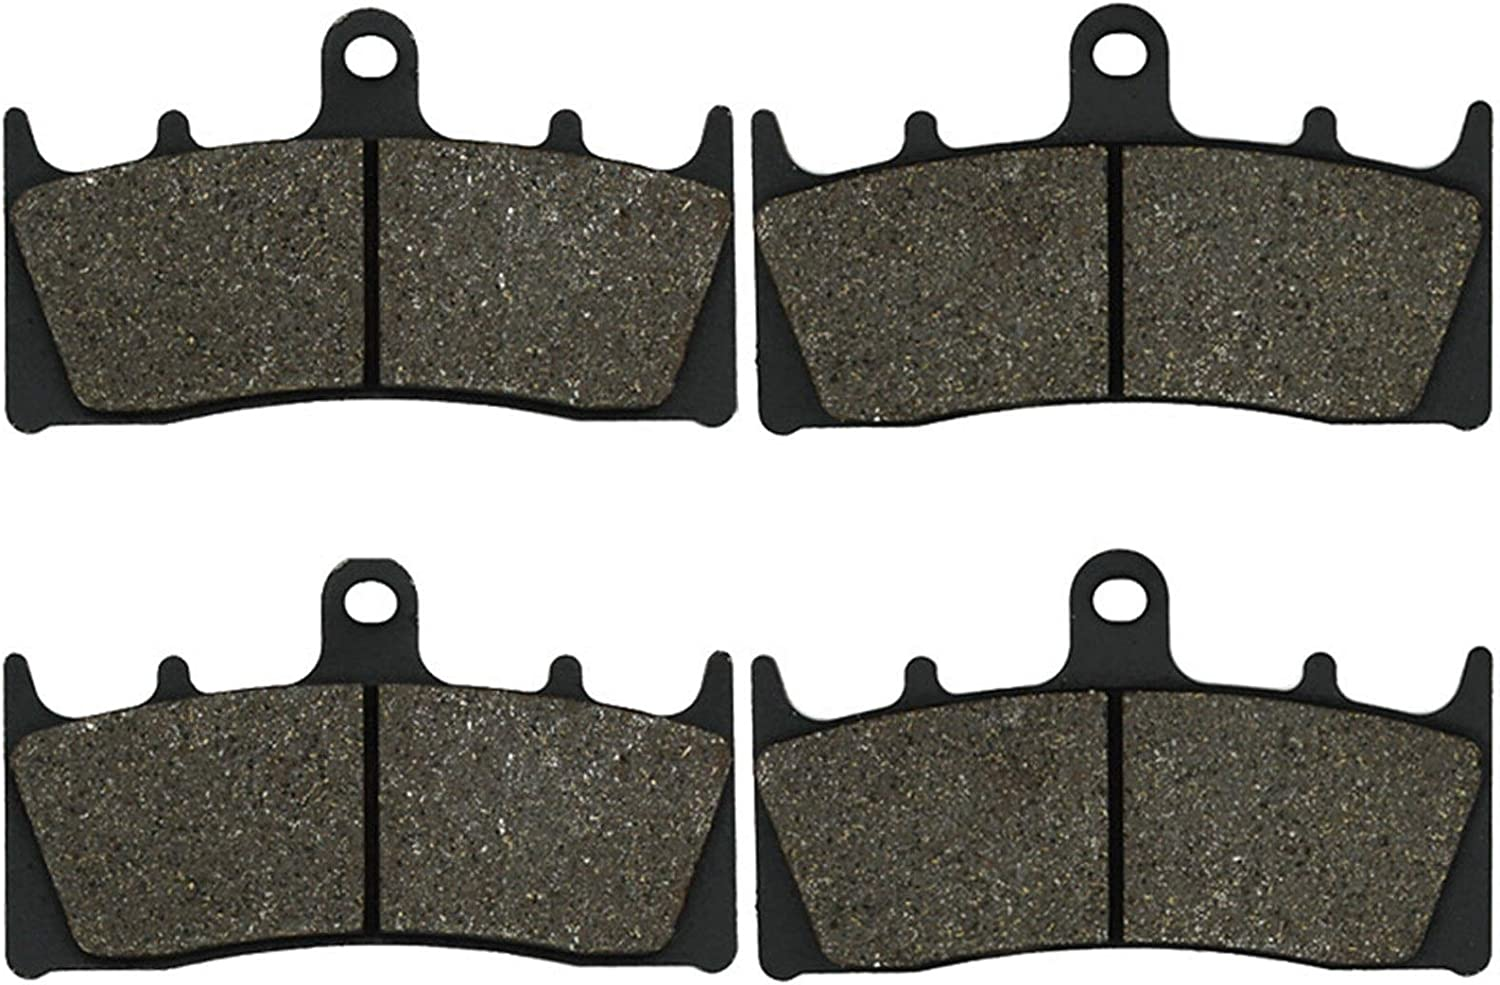 Amazon.com: Yerbay Motorcycle Front Brake Pads for Triumph